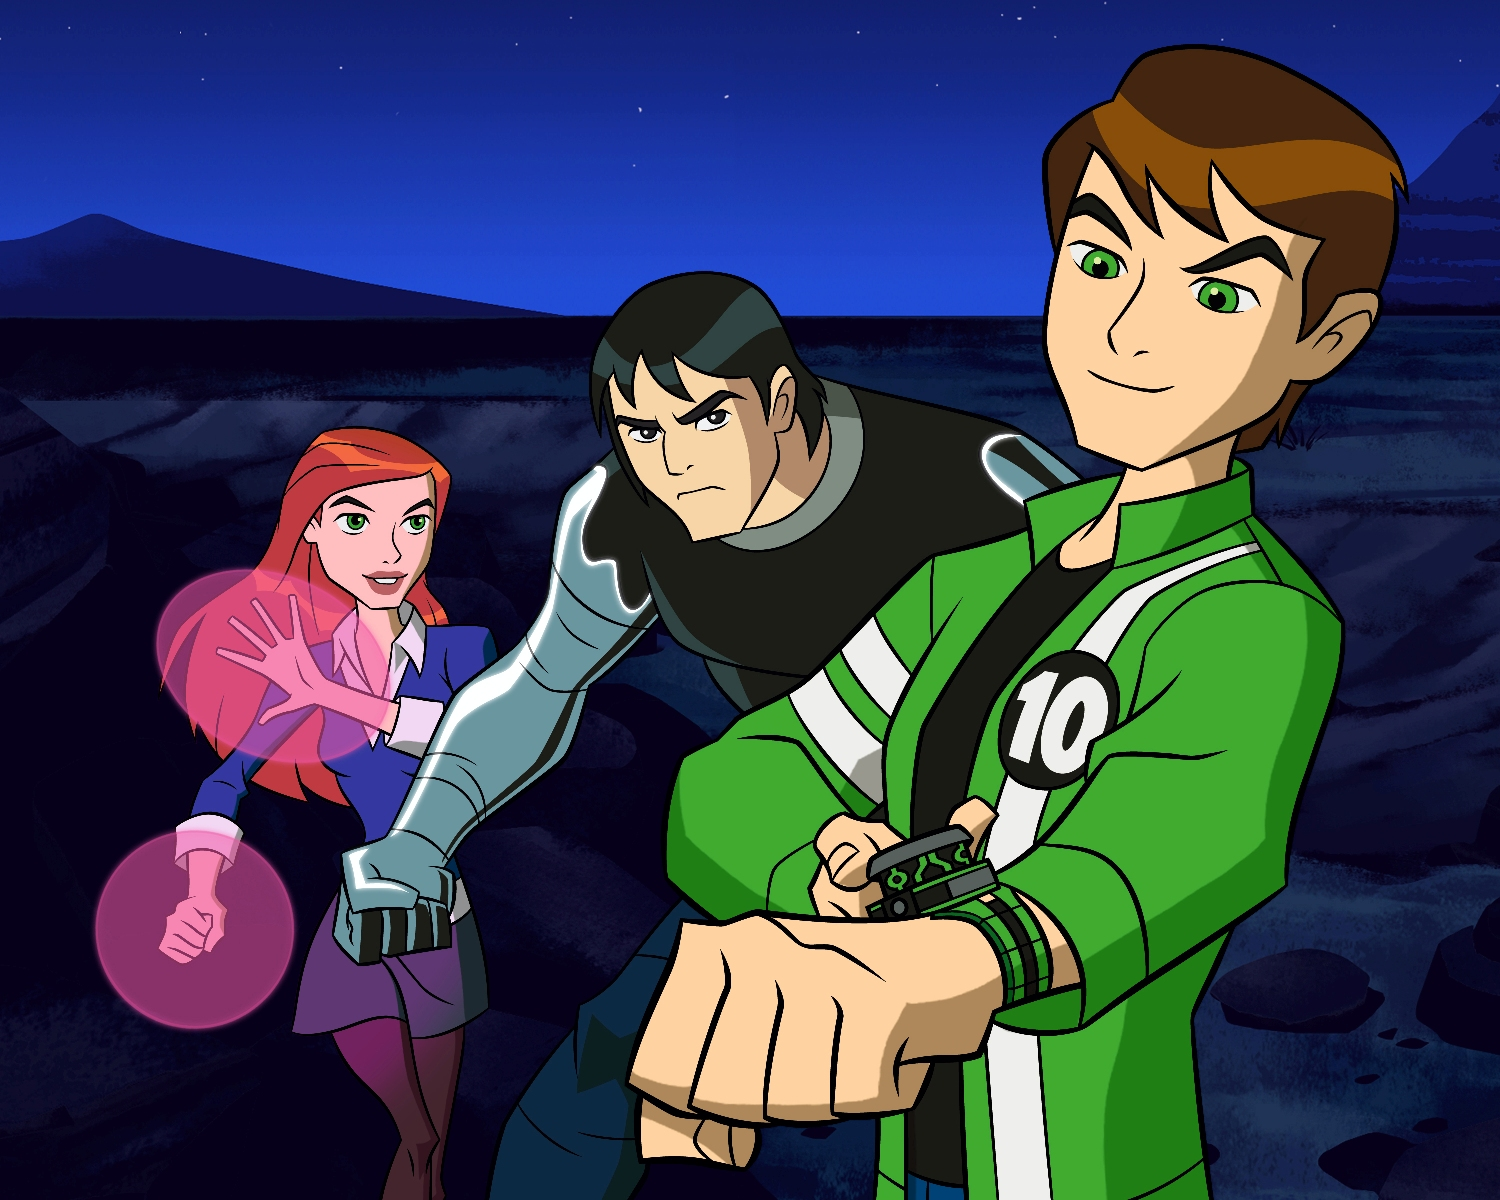 Wallpaper Ben 10 Cartoon Ben 10 Cartoon 2013 Movie